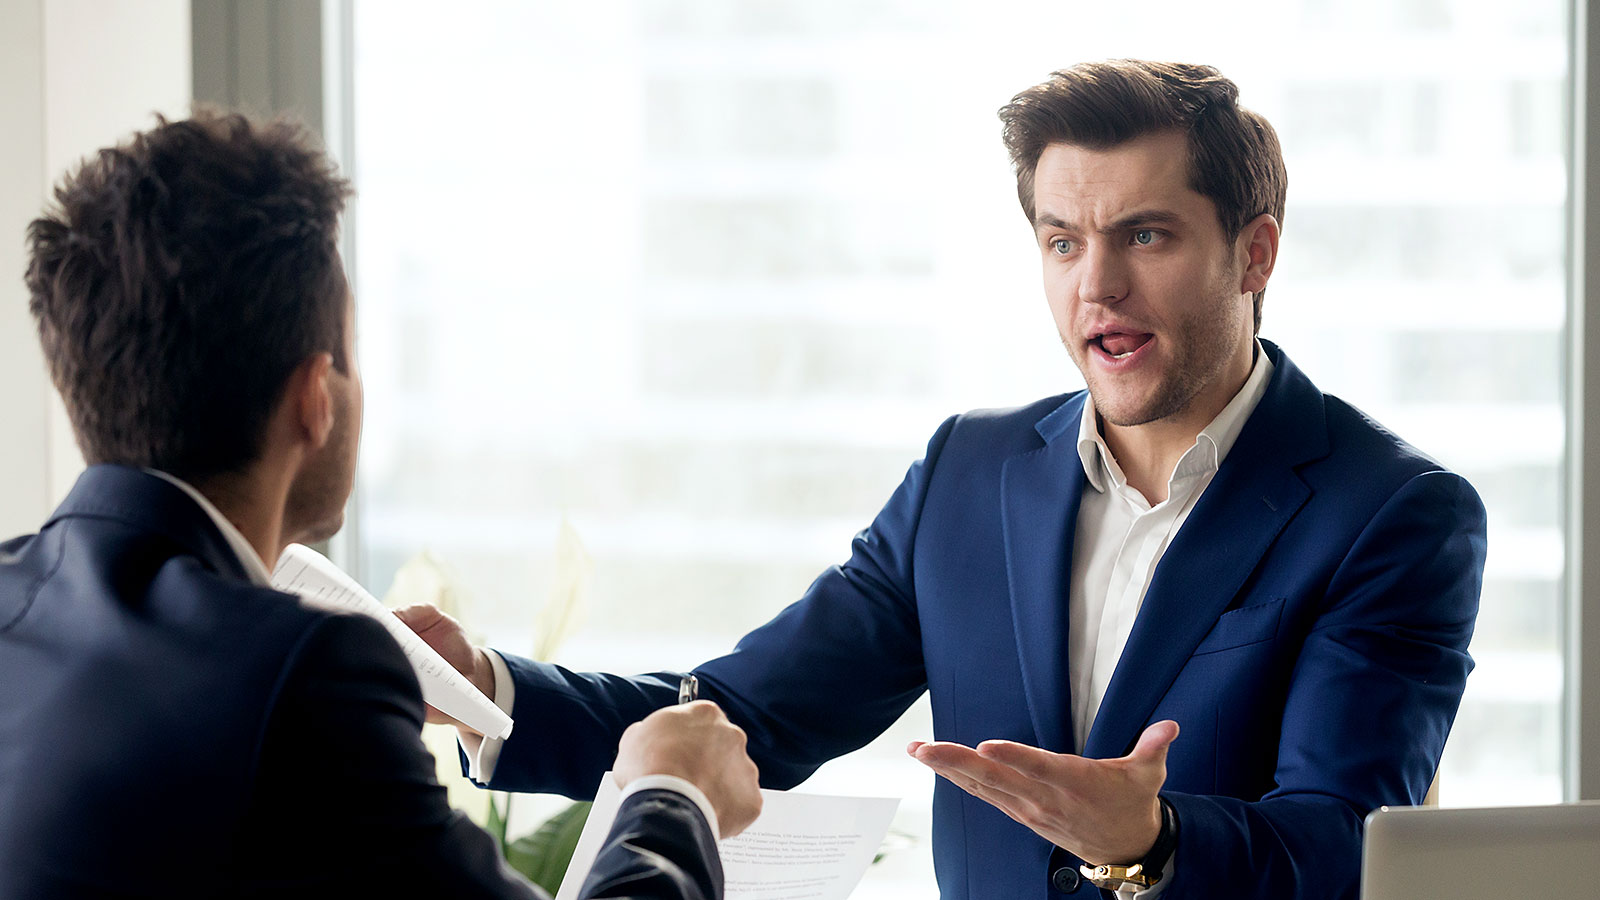 7 signs you work with a toxic achiever & how to cope